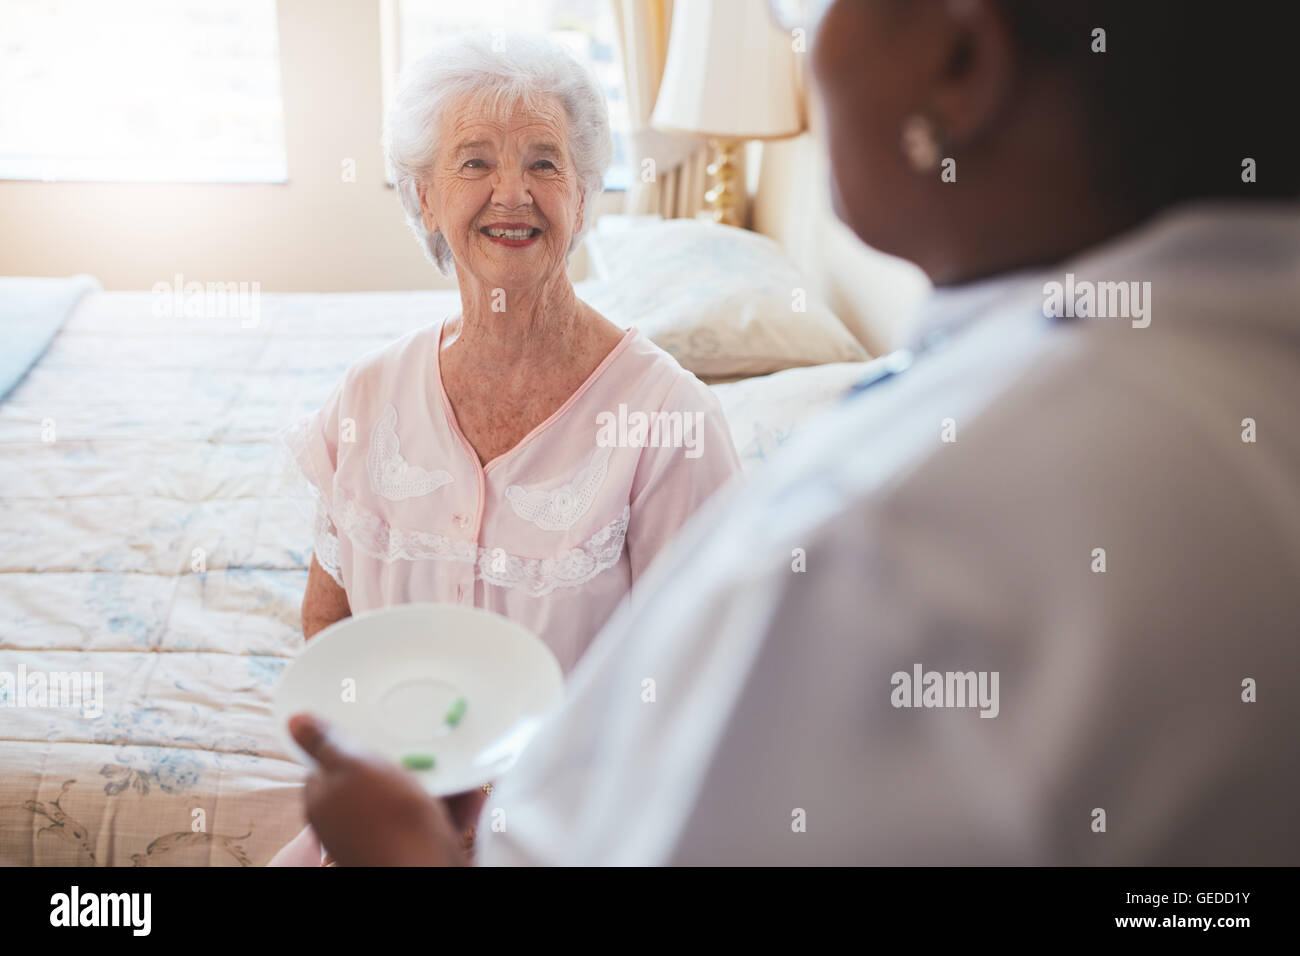 Indoor shot of senior woman sitting on bed and home care nurse giving medication. Caucasian elderly woman smiling. - Stock Image